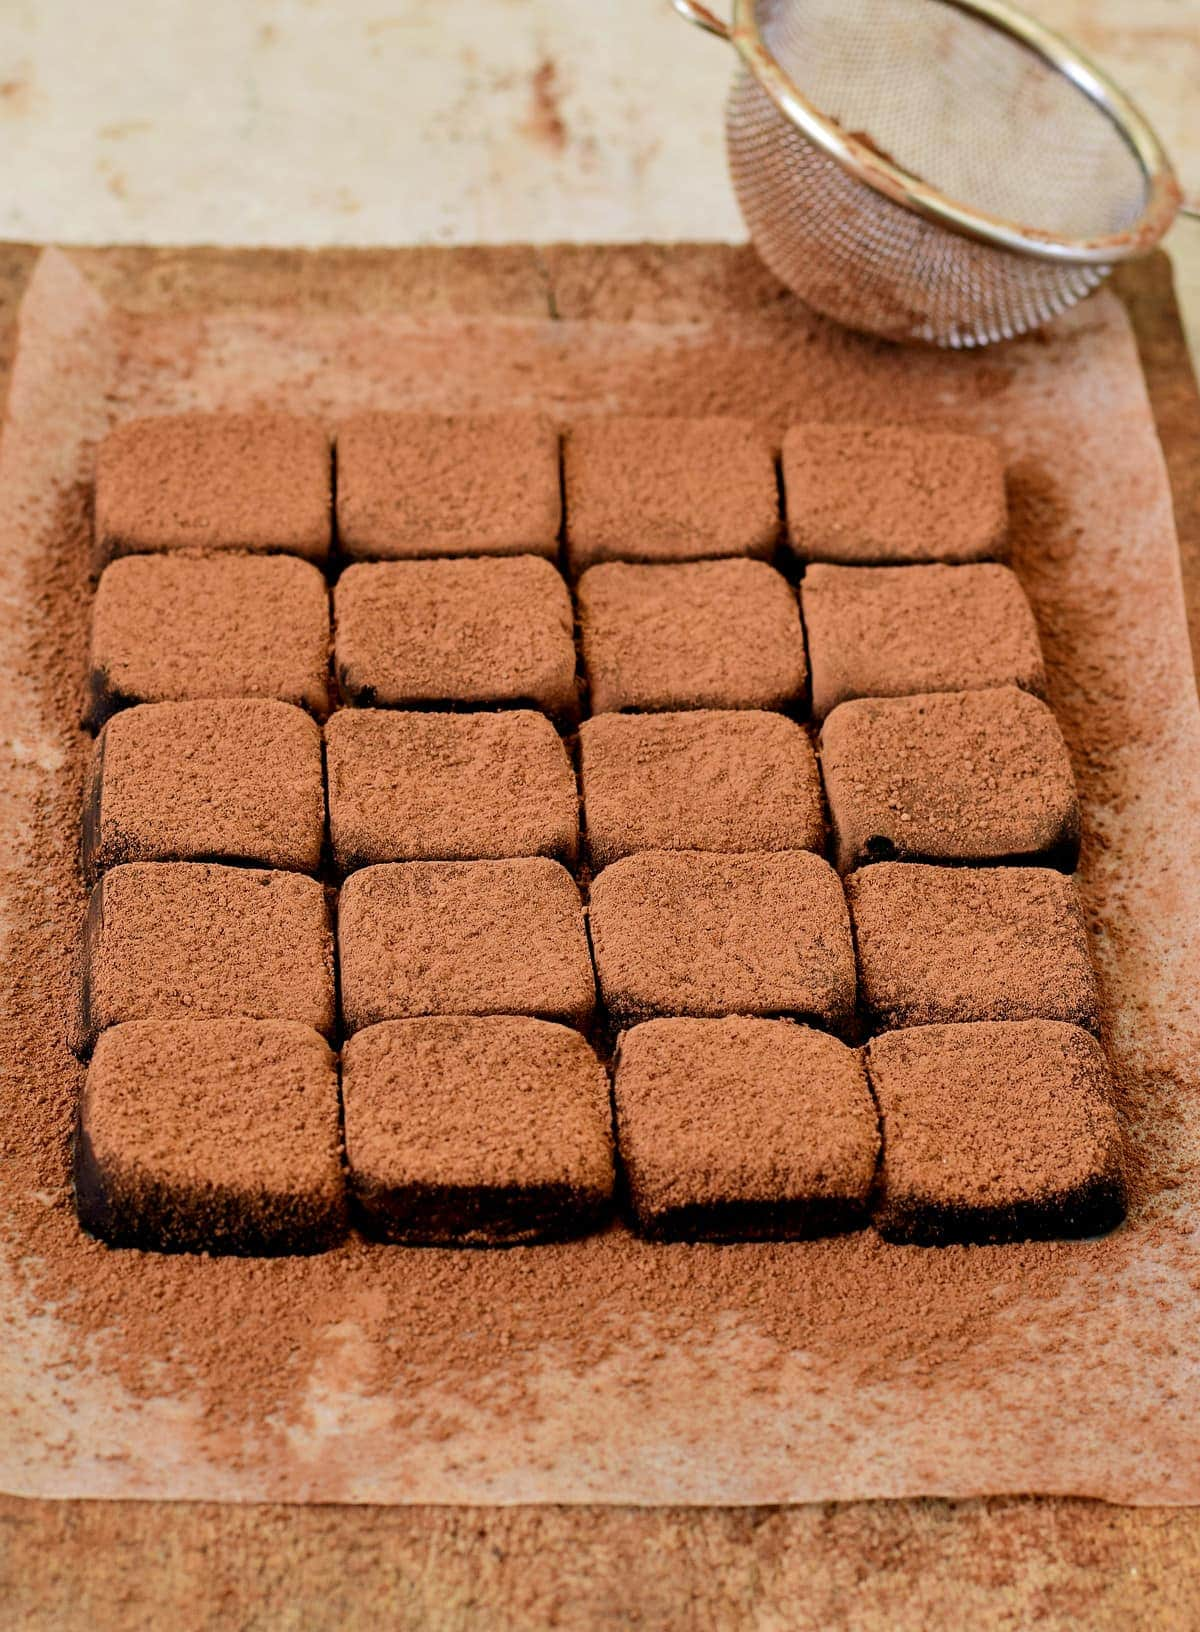 vegan chocolate fudge shaped in squares on cutting board